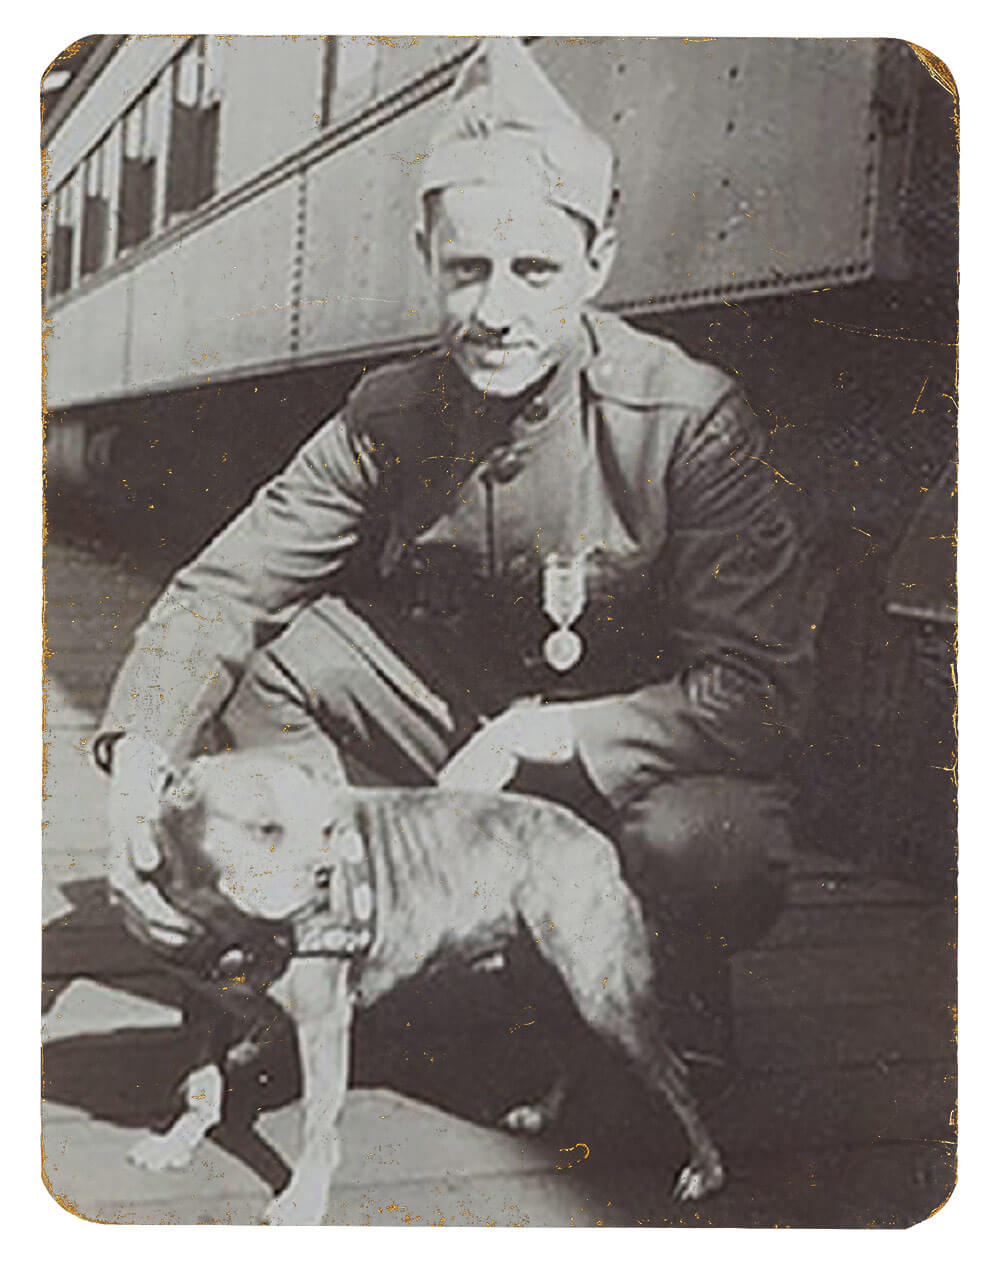 PVT Robert Conroy and SGT Stubby. Photo courtesy National Museum of America, History Division of Armed Forces